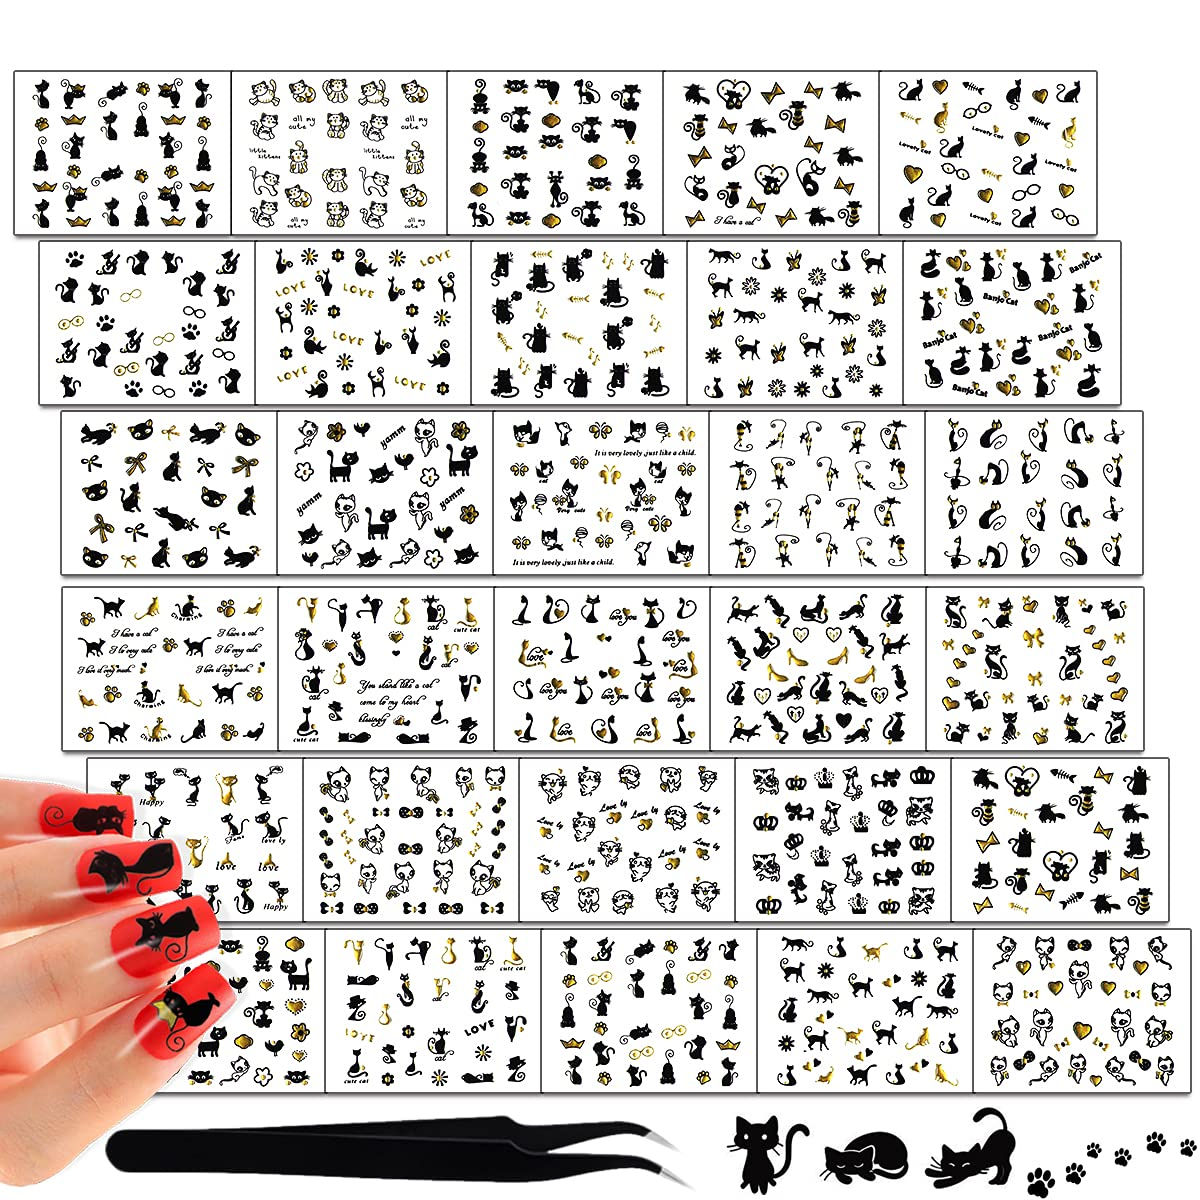 SILPECWEE 30 Sheets 3D Adhesive Stickers Max 58% OFF Tips Nail Black New item Golden